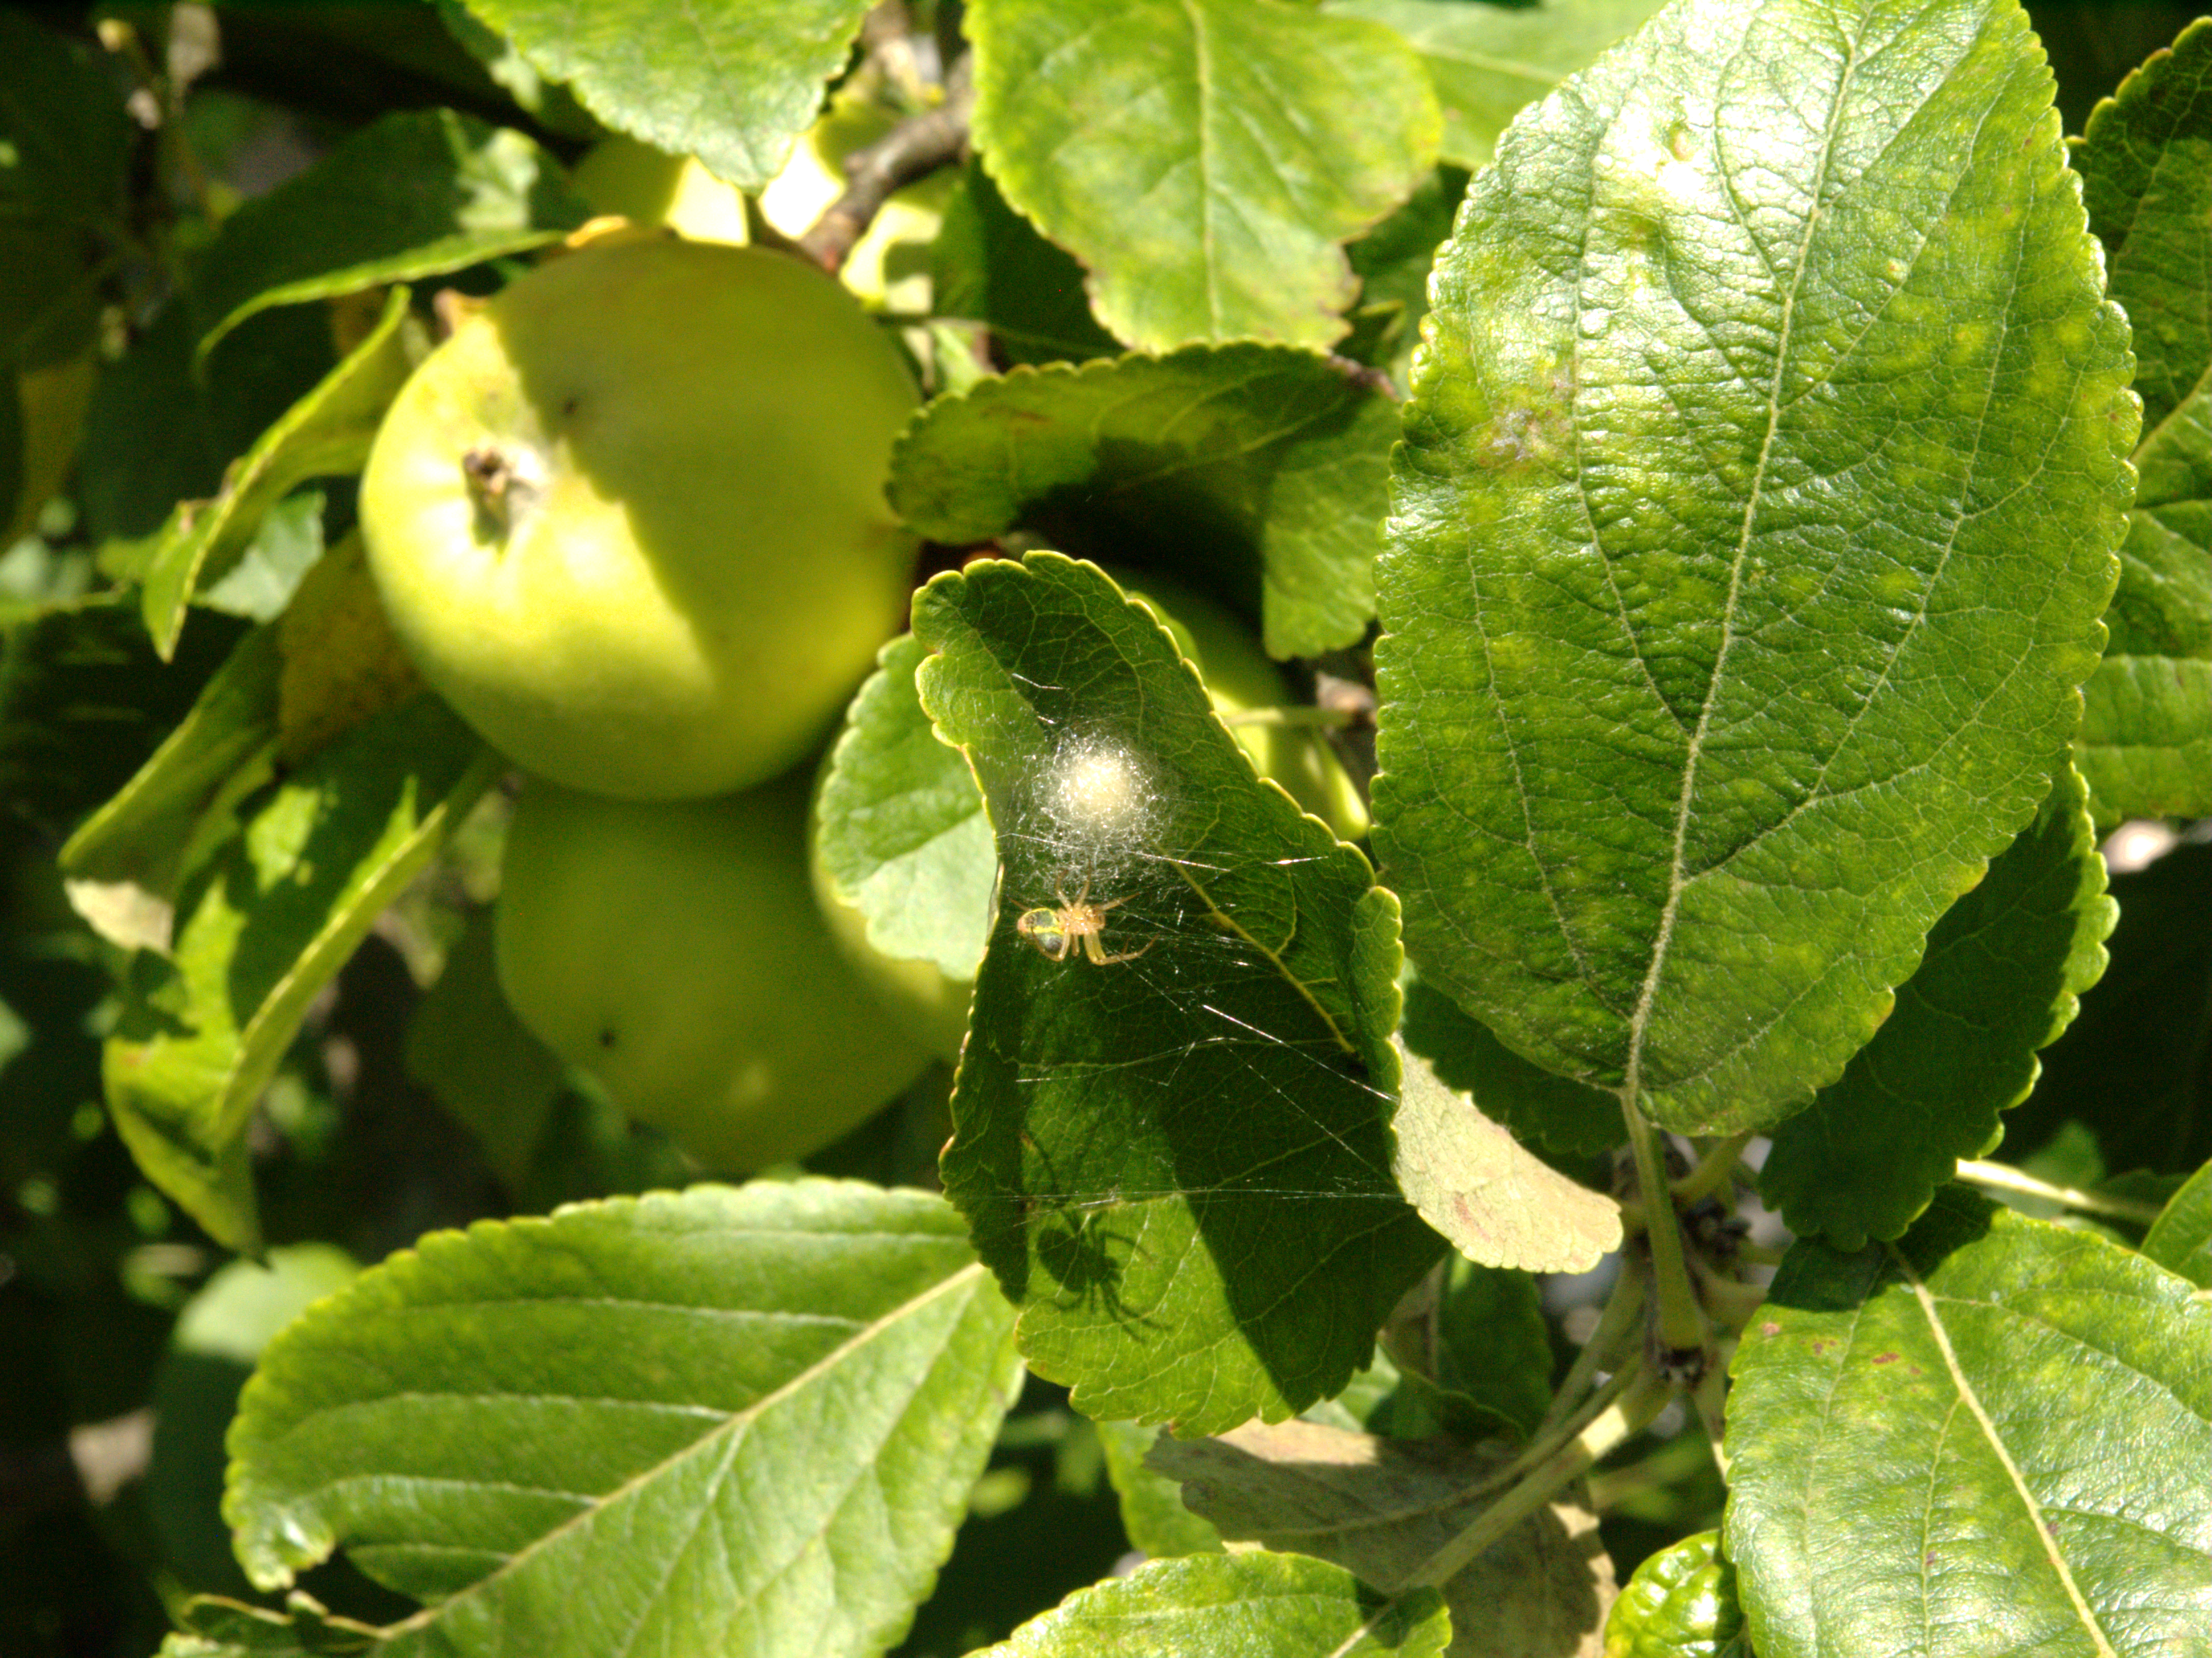 momma spider and the apple tree by catsndogs on momma spider and the apple tree by catsndogs